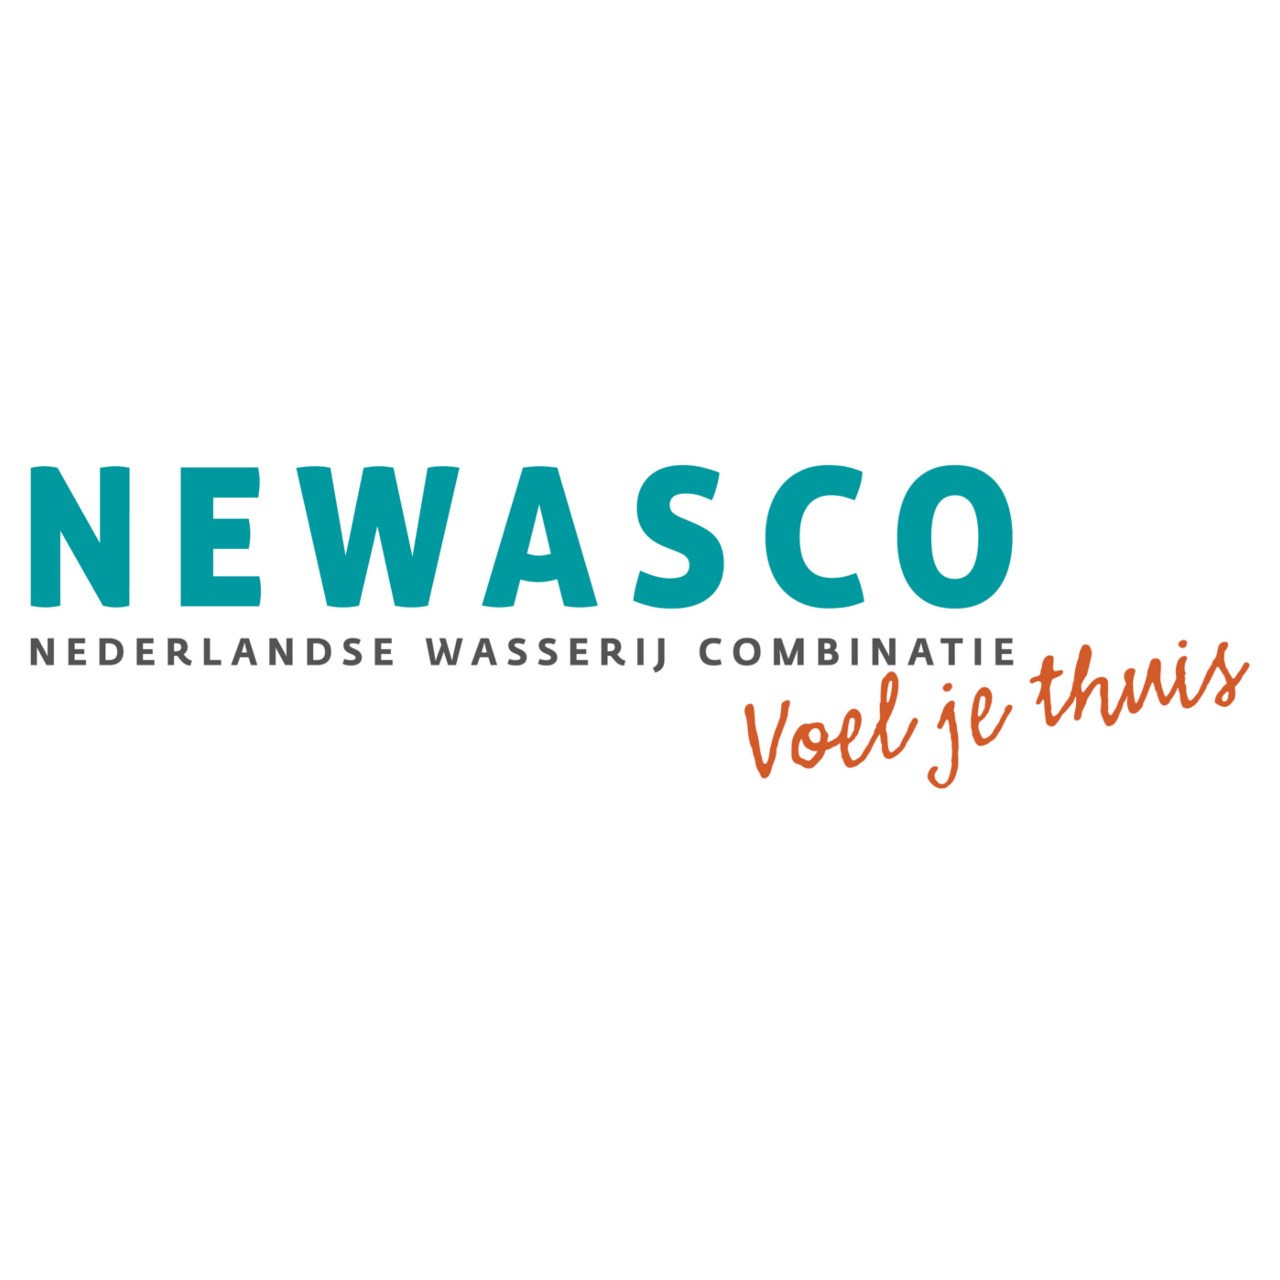 Newasco website.jpg